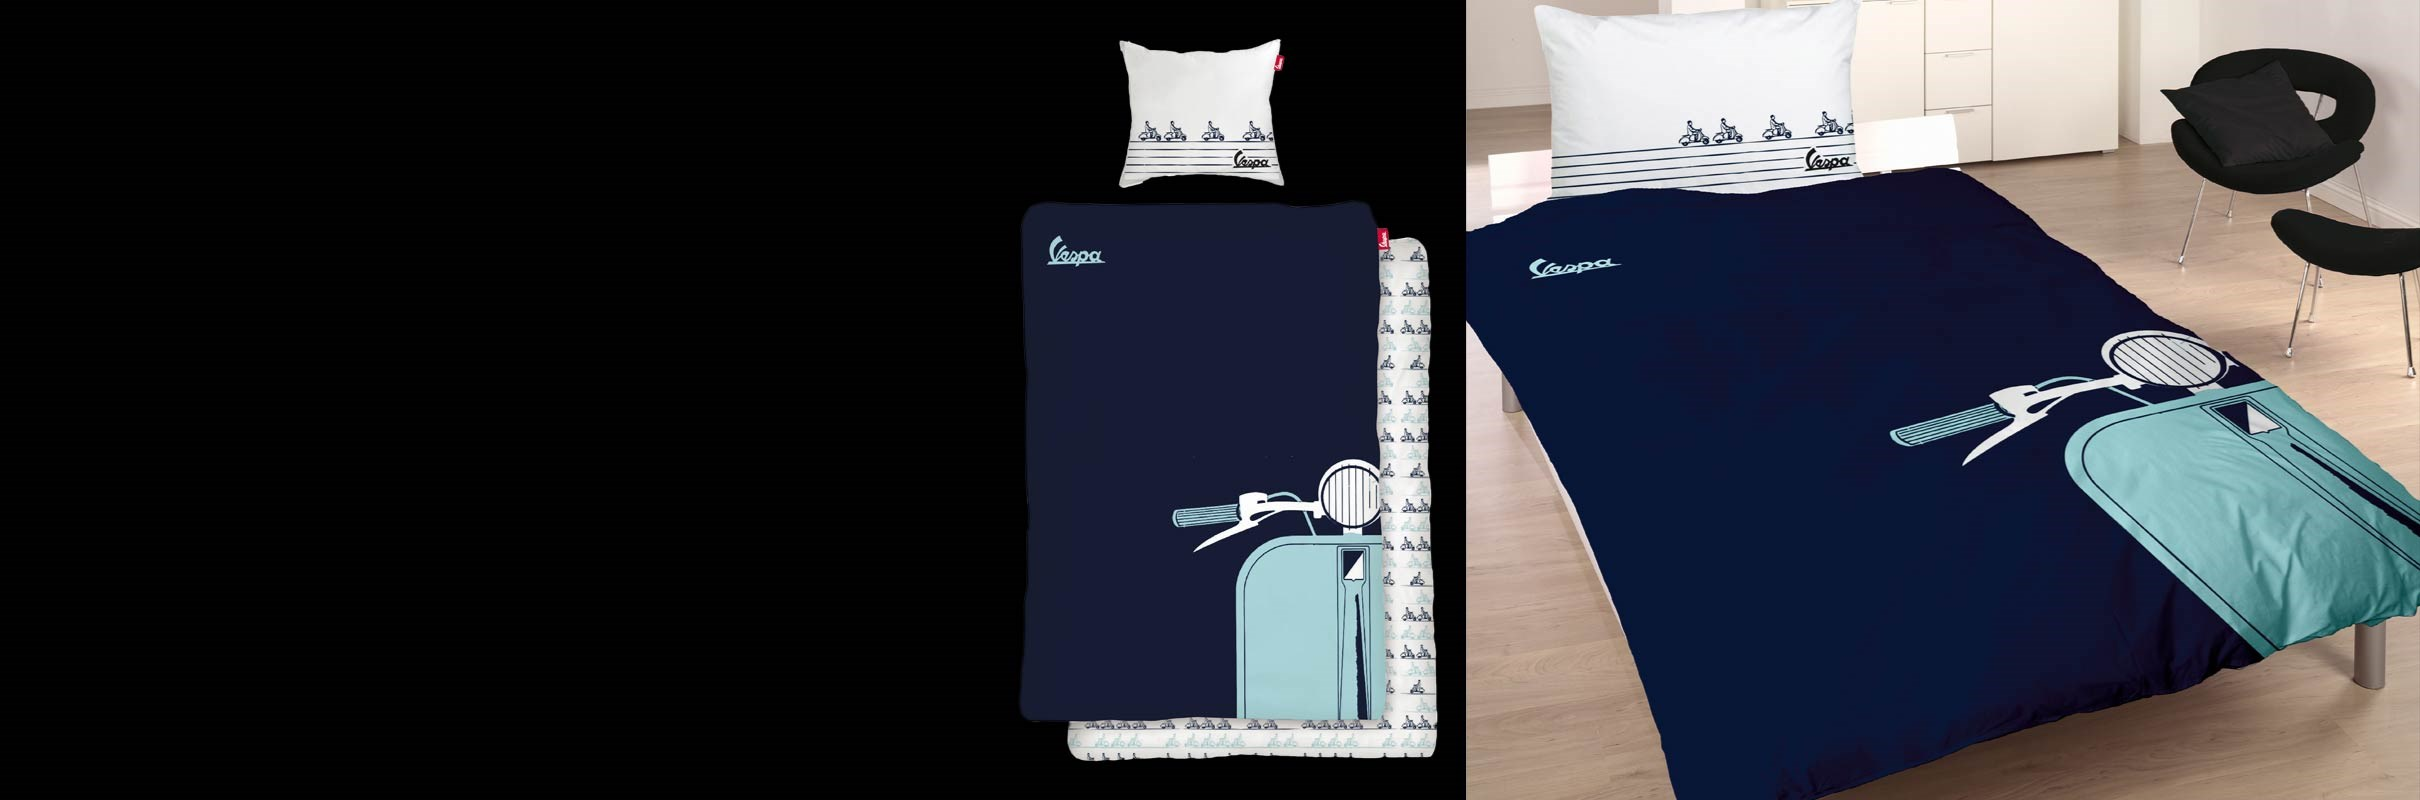 Bed Linen Vespa, variuos designs, 100% cotton